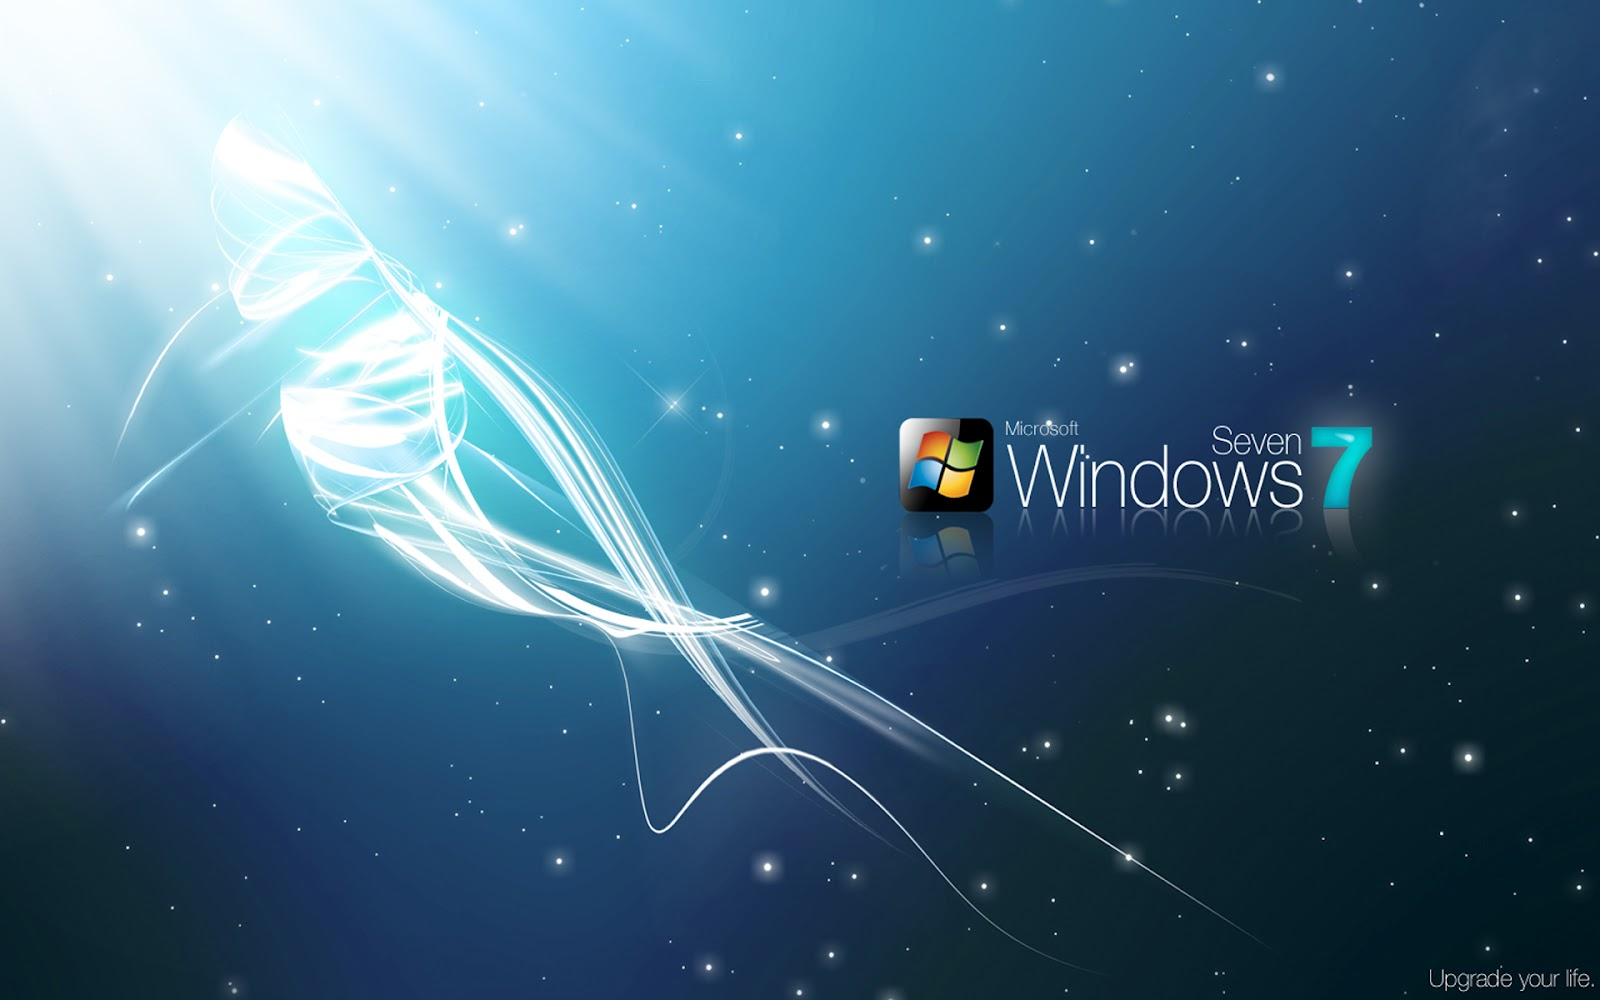 hd wallpapers of windows 7 ultimate unique things